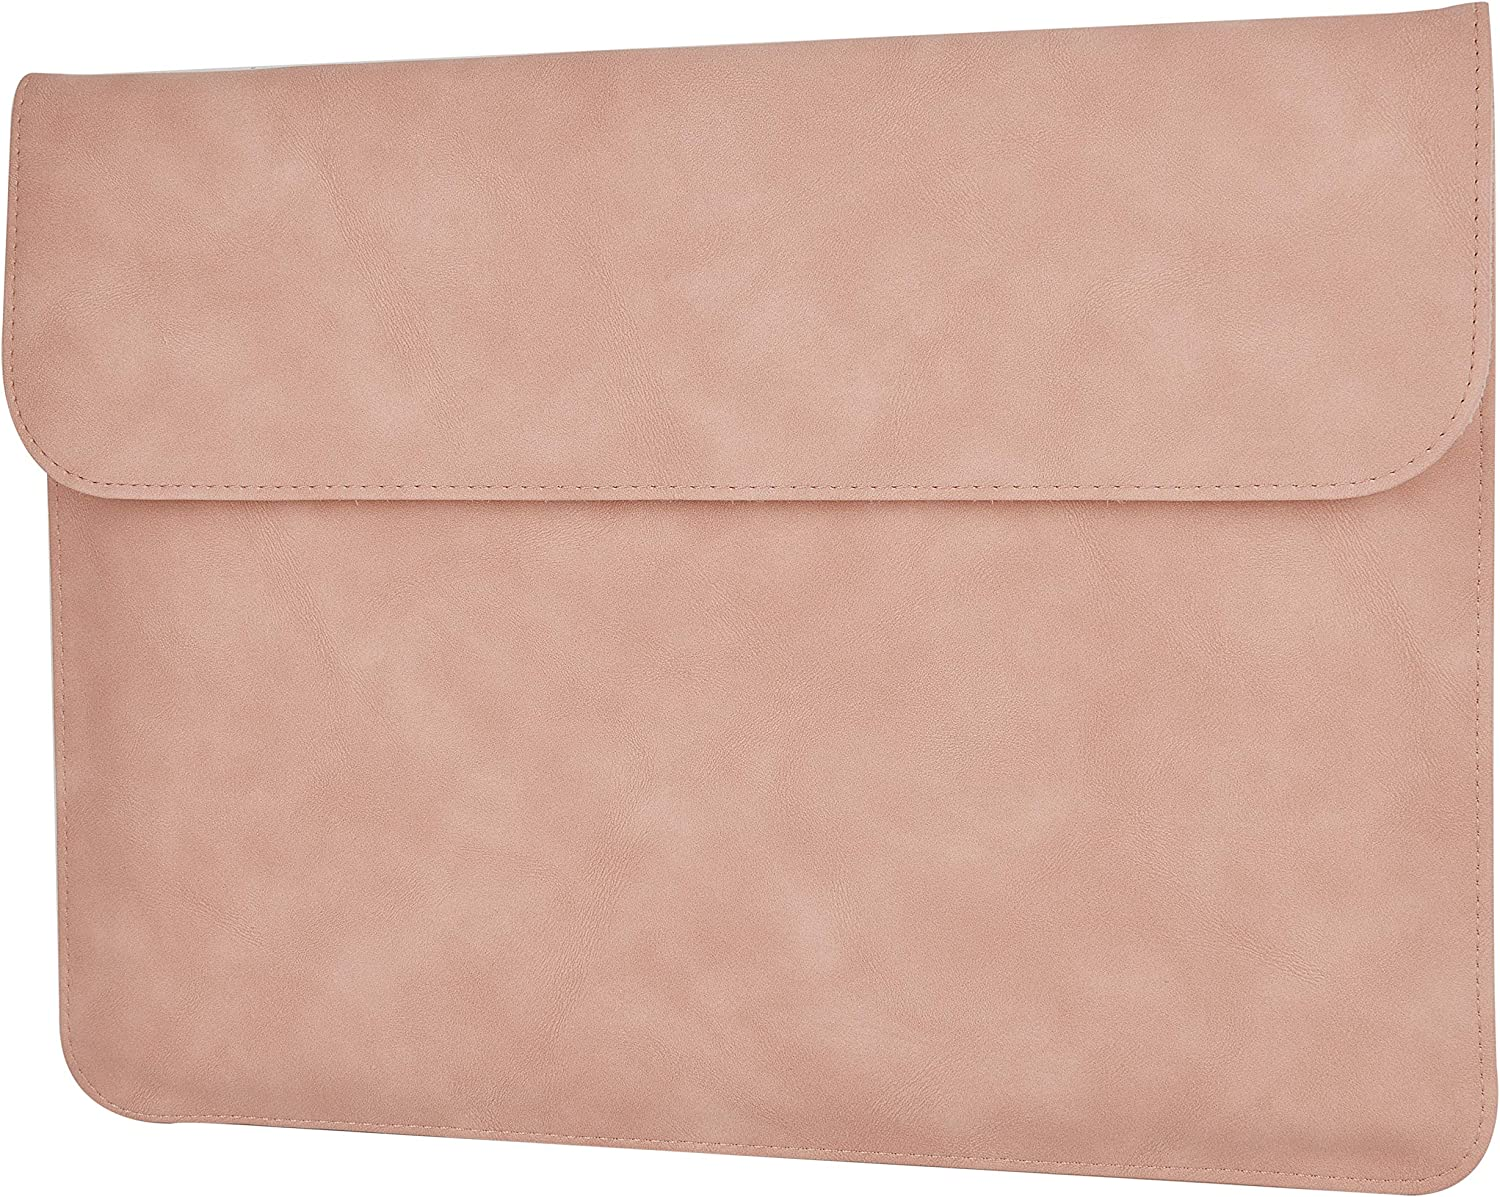 LuvCase Laptop Suede Leather Flap Envelope Sleeve Pouch Bag Compatible MacBook Pro 15-16 Inch, A2141/A1707/A1990/A1398/A1286, Chromebook, Acer,Thinkpad HP Notebook (Pink Magnetic Sleeve (Horizontal))